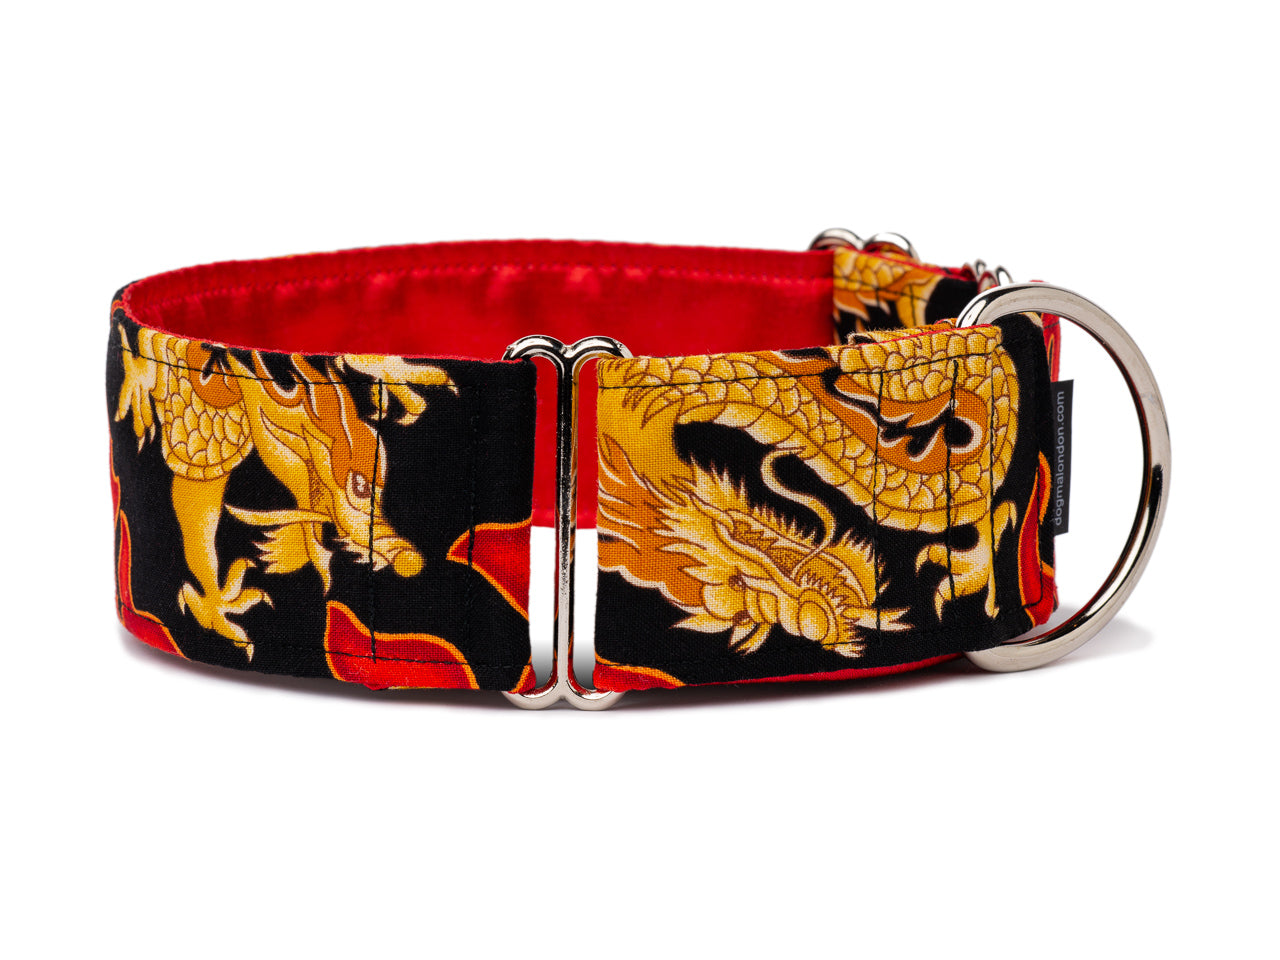 Classic Chinese dragons in gold breathe red flames across this cool black collar that any stylish pup will love!